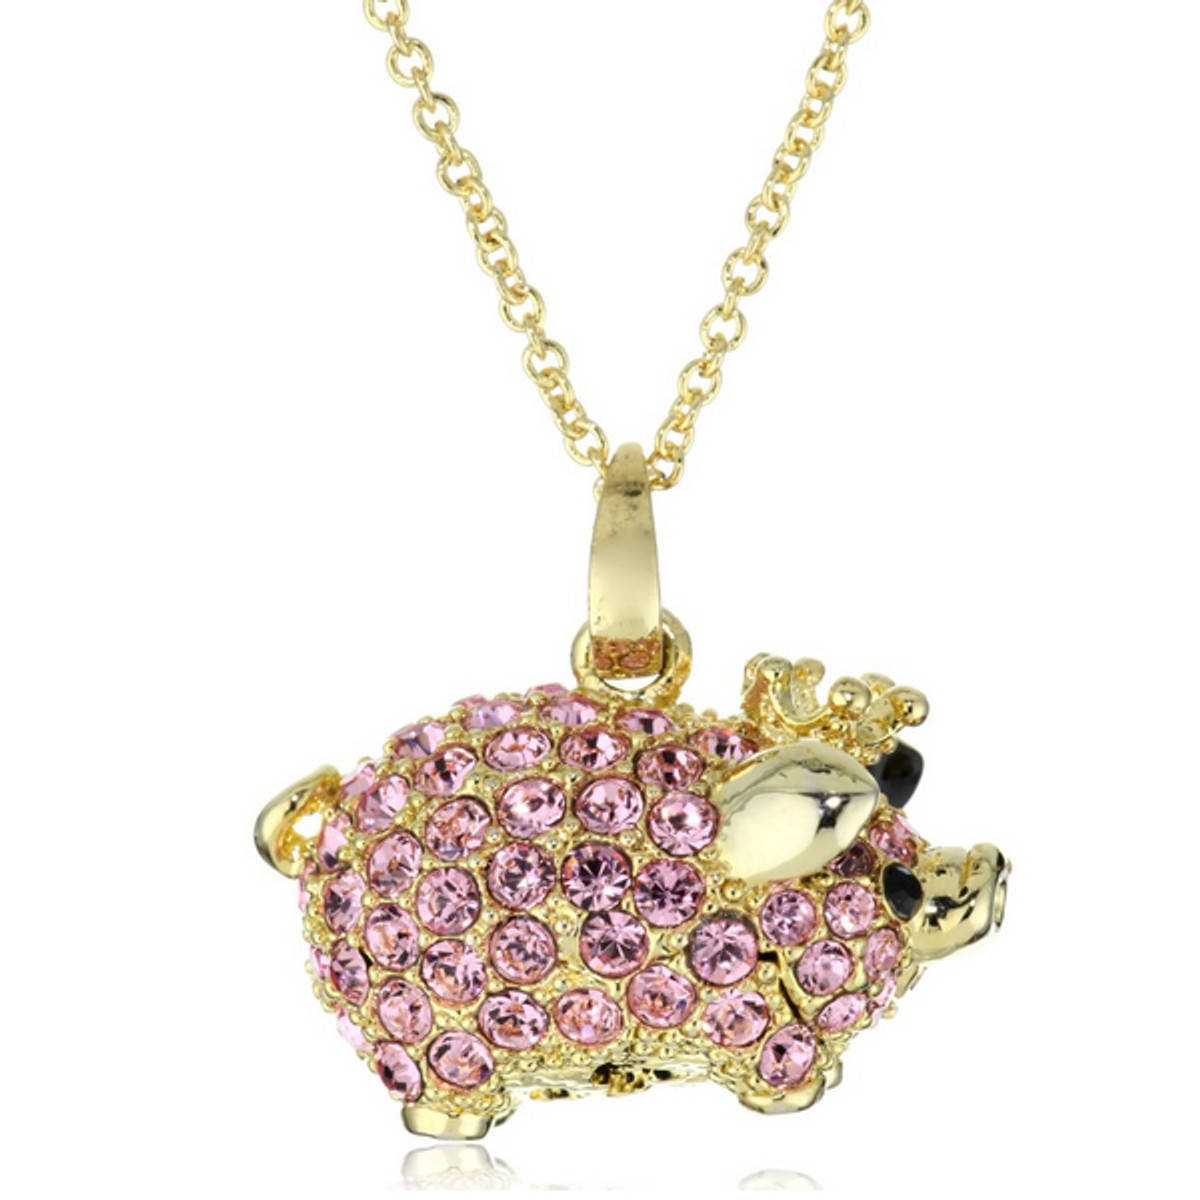 A Special Princess Pig Necklace Necklace From Andrew Hamilton Crawford Jewelry